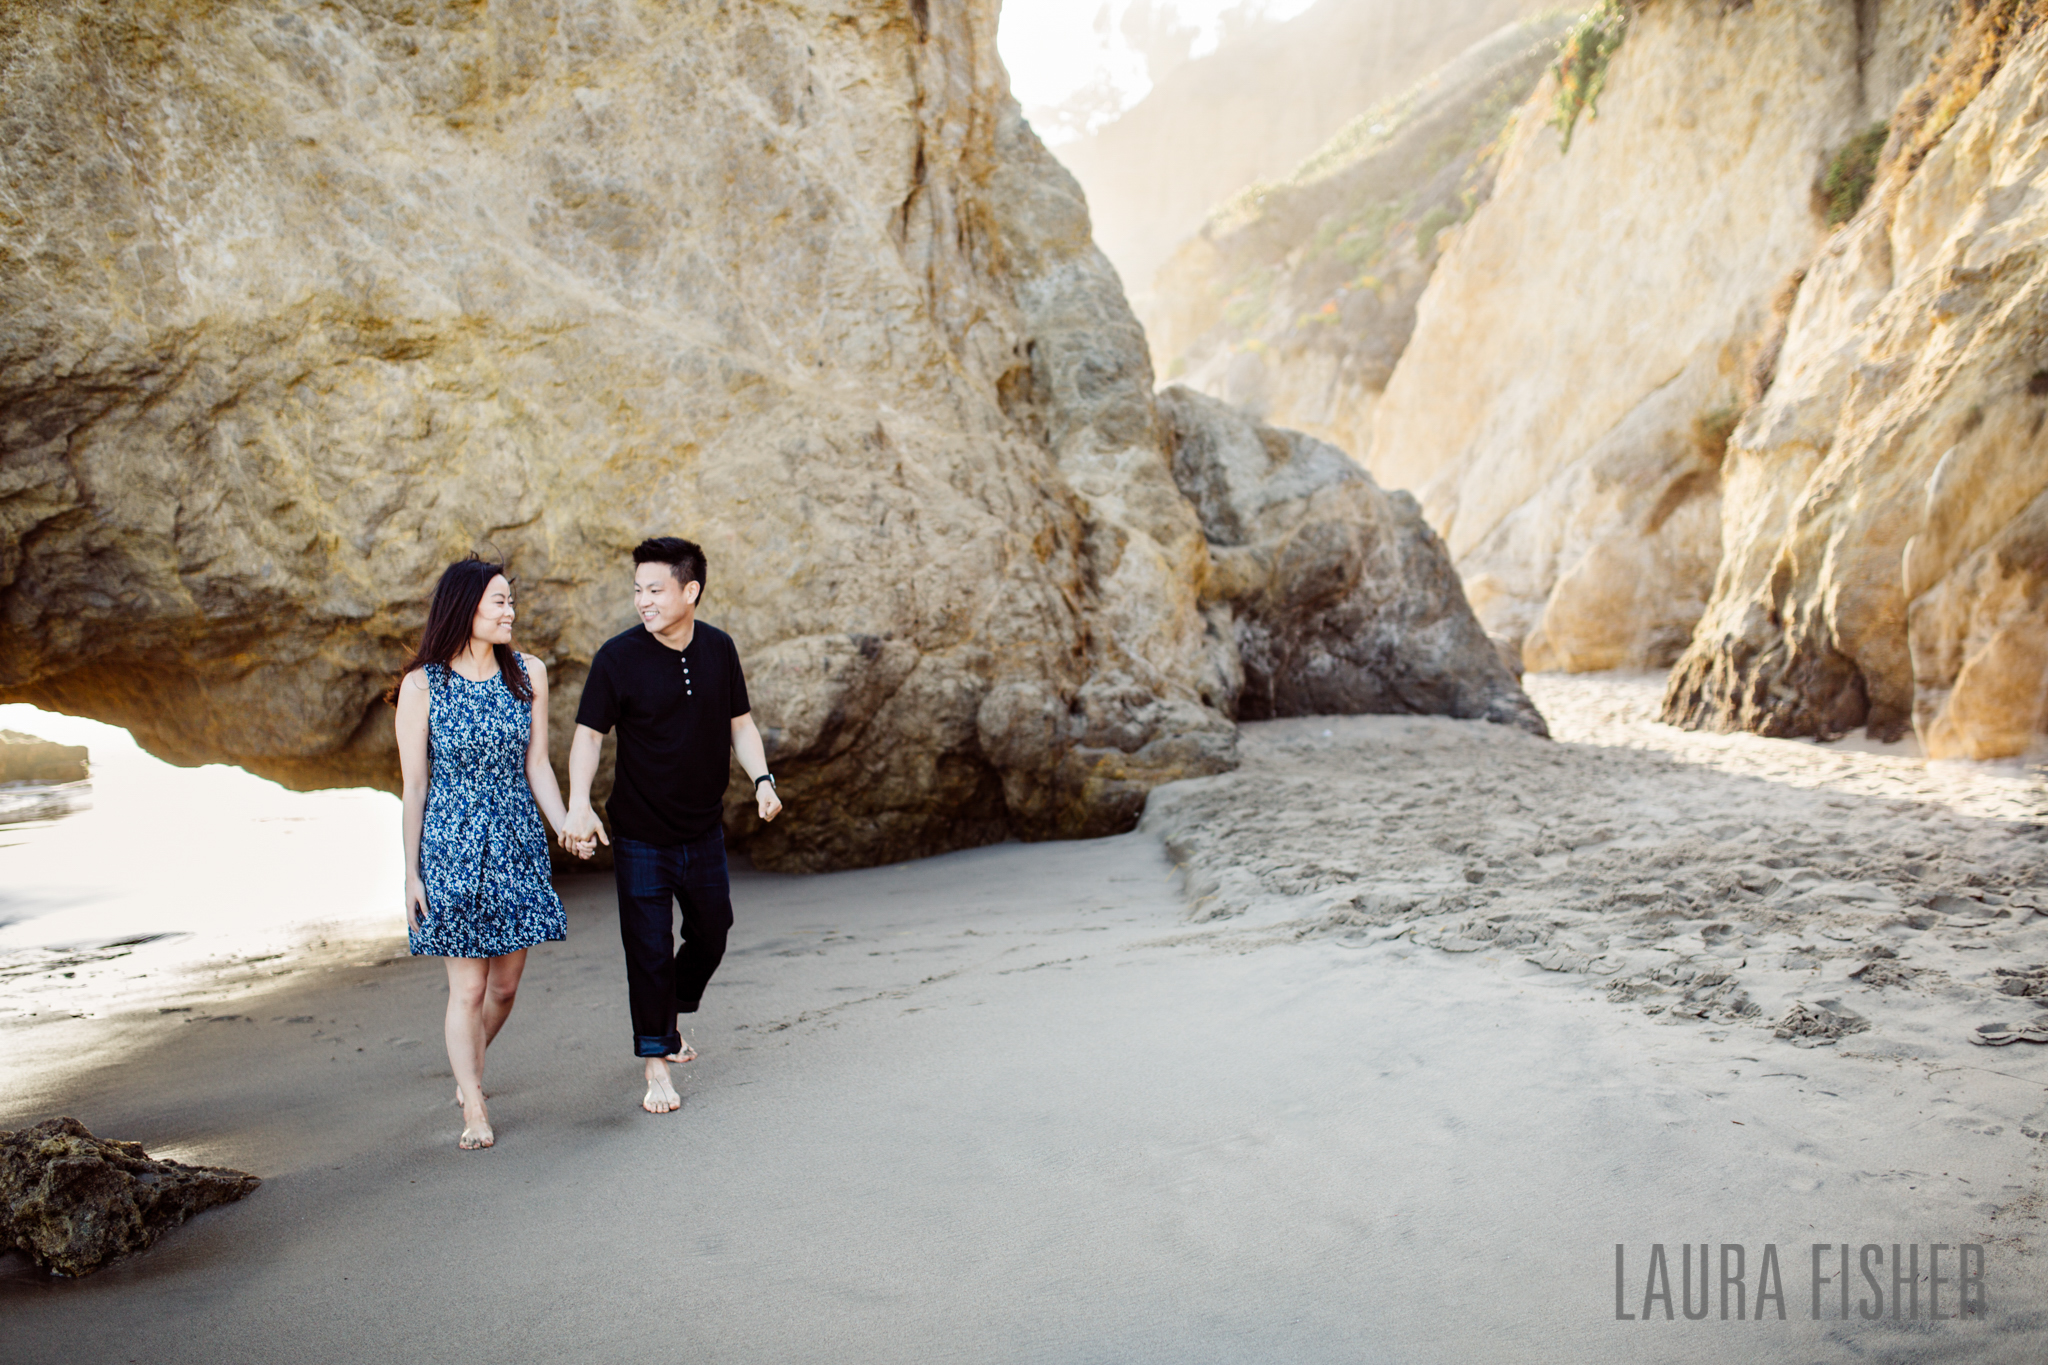 malibu-california-wedding-el-matador-beach-laura-fisher-photography-0037-2.jpg